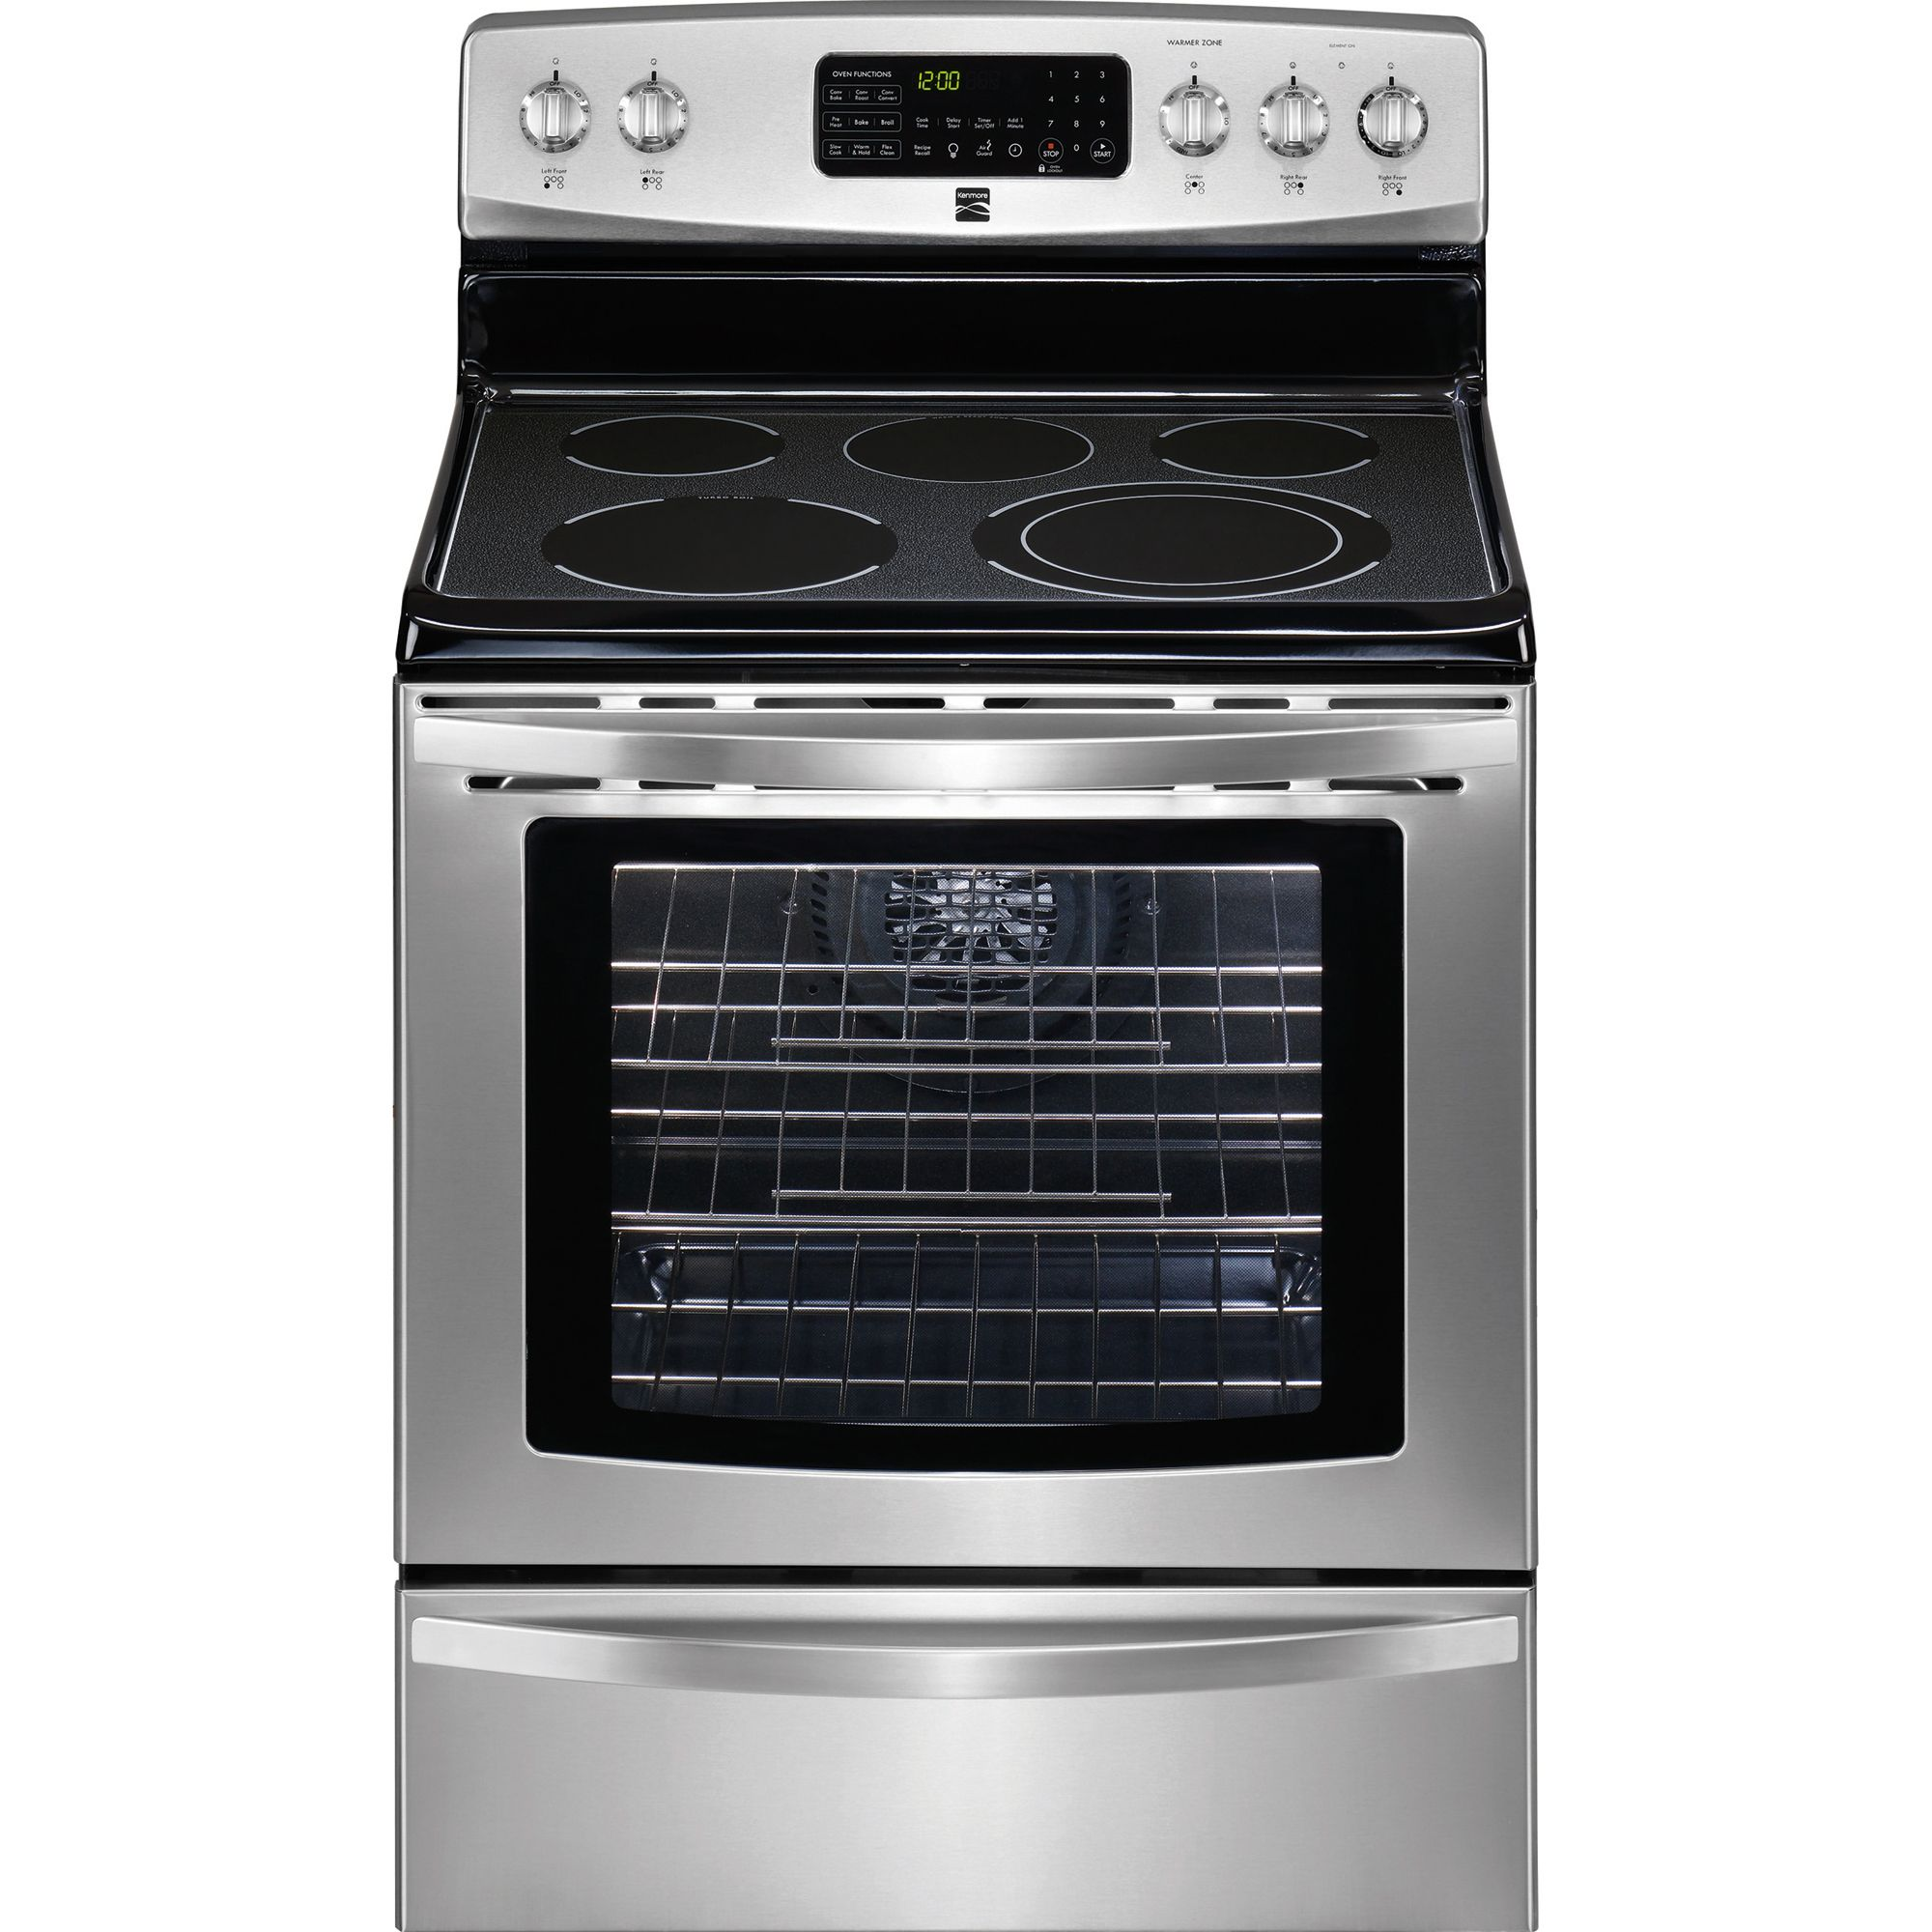 "Buy electronic stores - Kenmore 30"" Freestanding Electric Range w/ True Convection -"